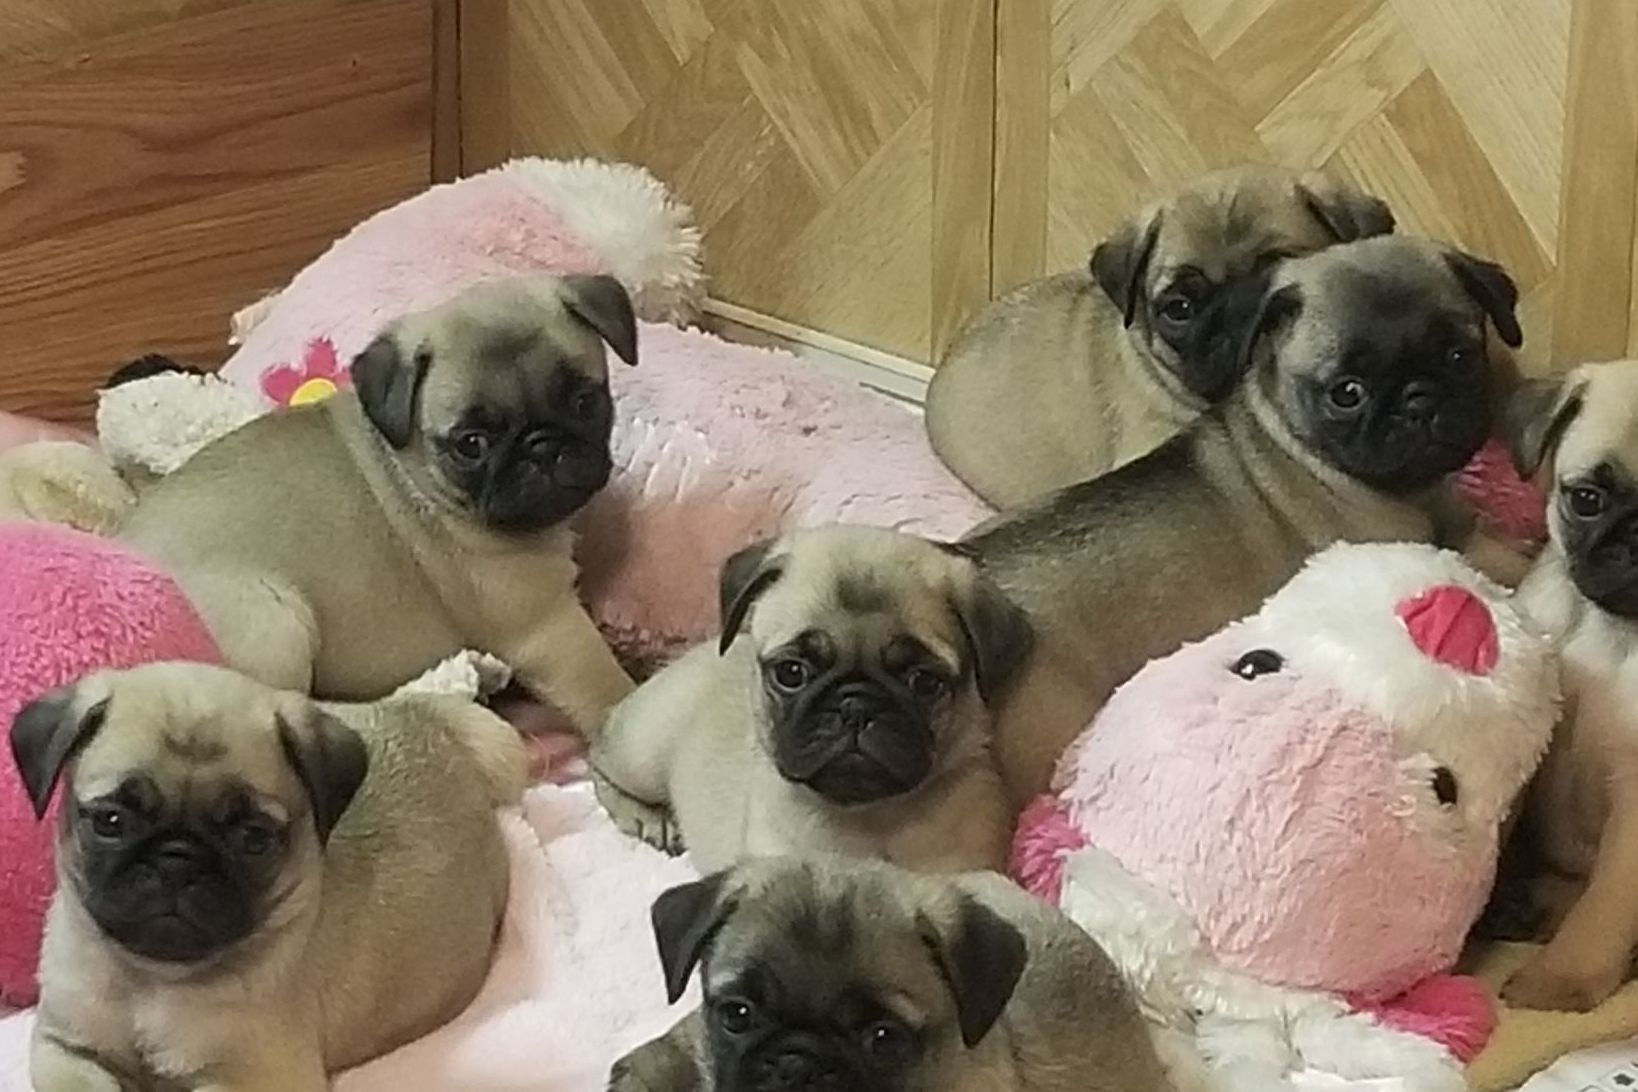 Rick Barrera Pugs Fawn Or Black Puppies Ready June 30th One Now Has Pug Puppies For Sale In Humble Tx On A Puppies For Sale Pug Puppies For Sale Pug Puppies